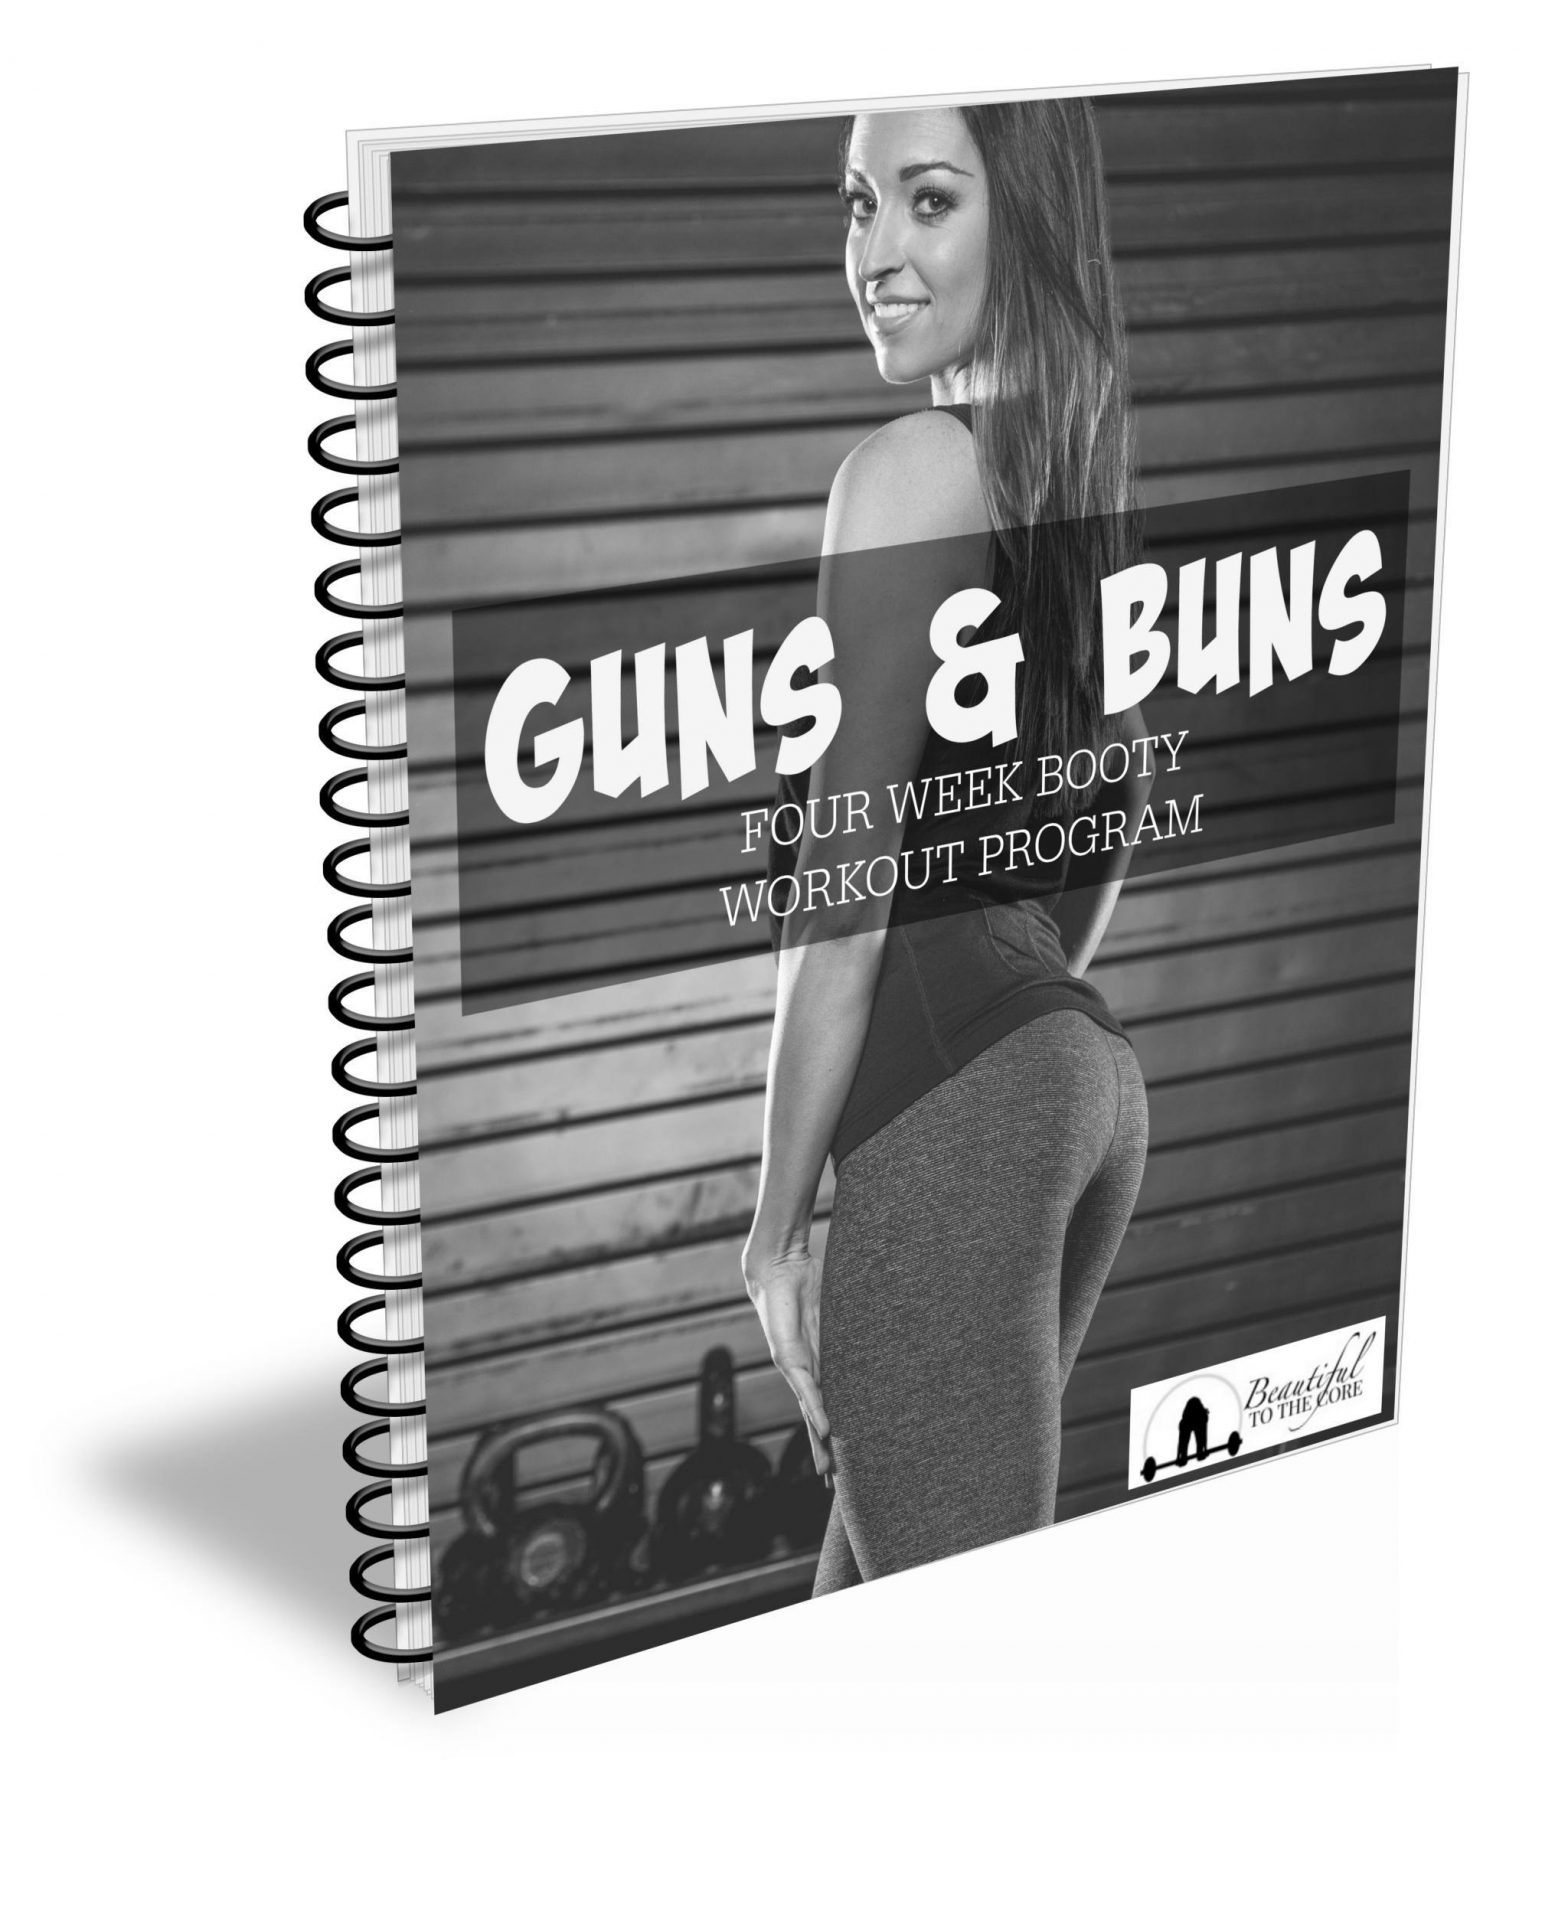 guns and buns training